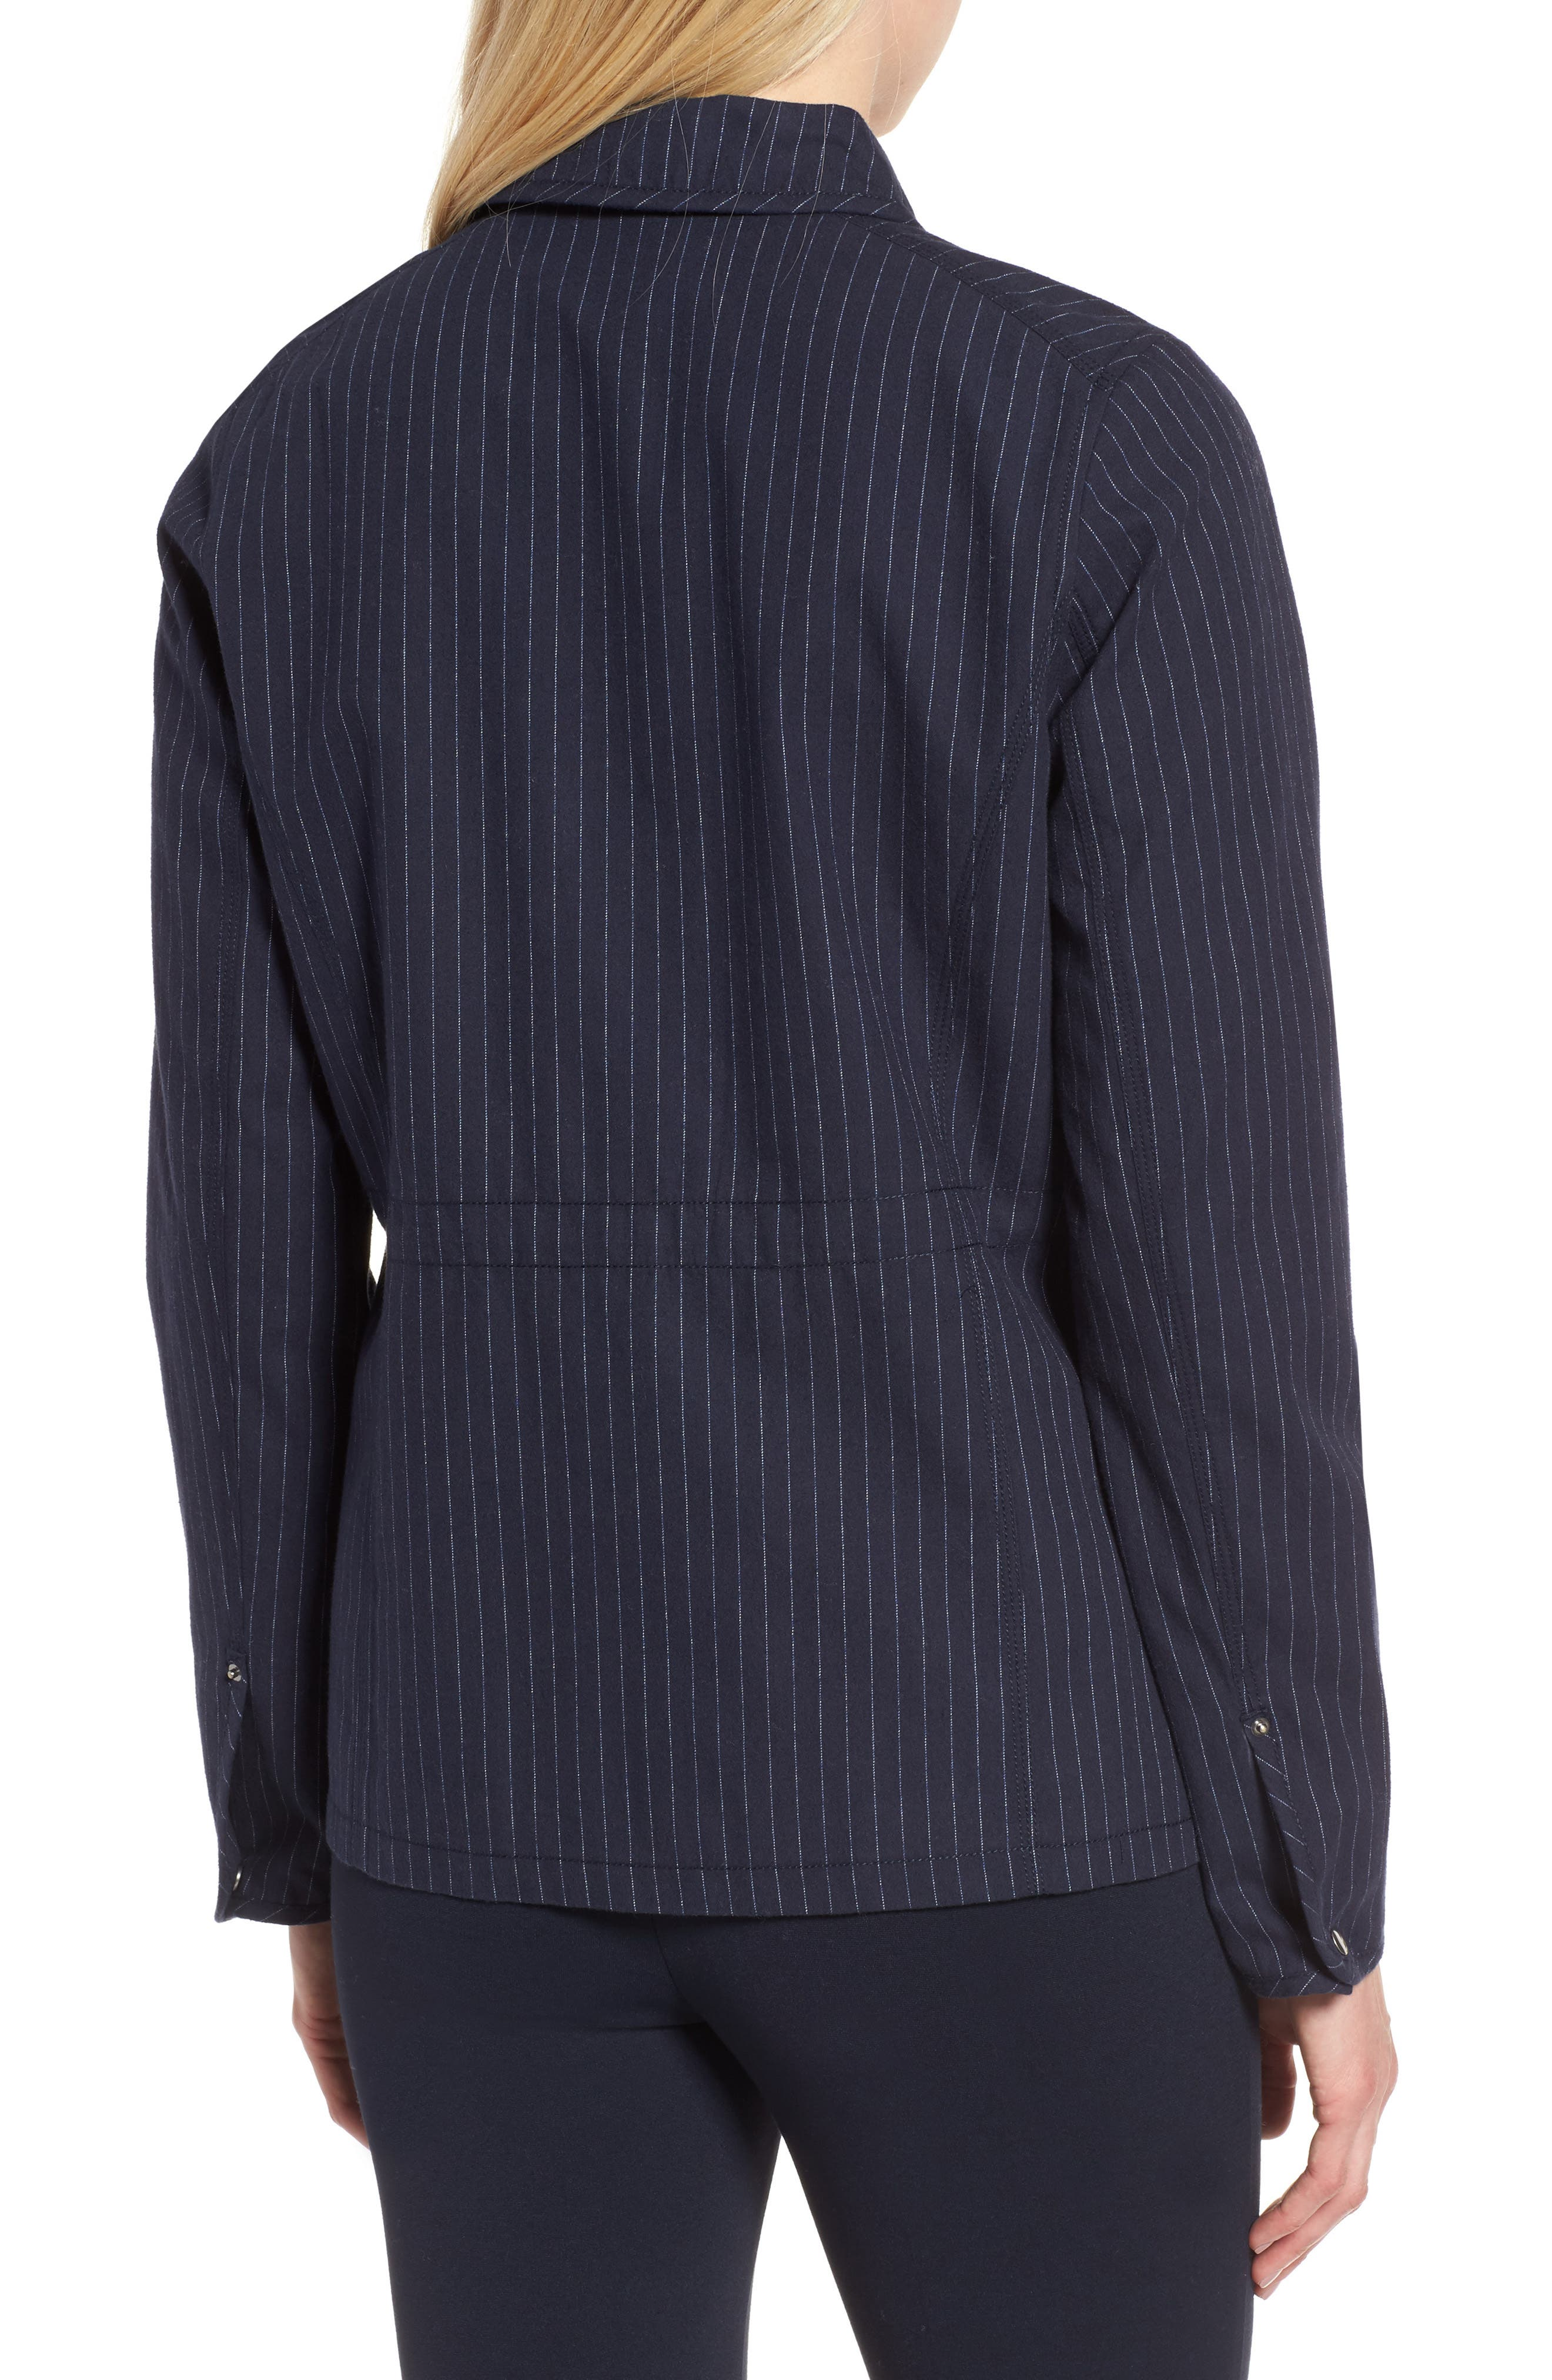 Pinstripe Utility Jacket,                             Alternate thumbnail 2, color,                             Navy- Ivory Pinstripe